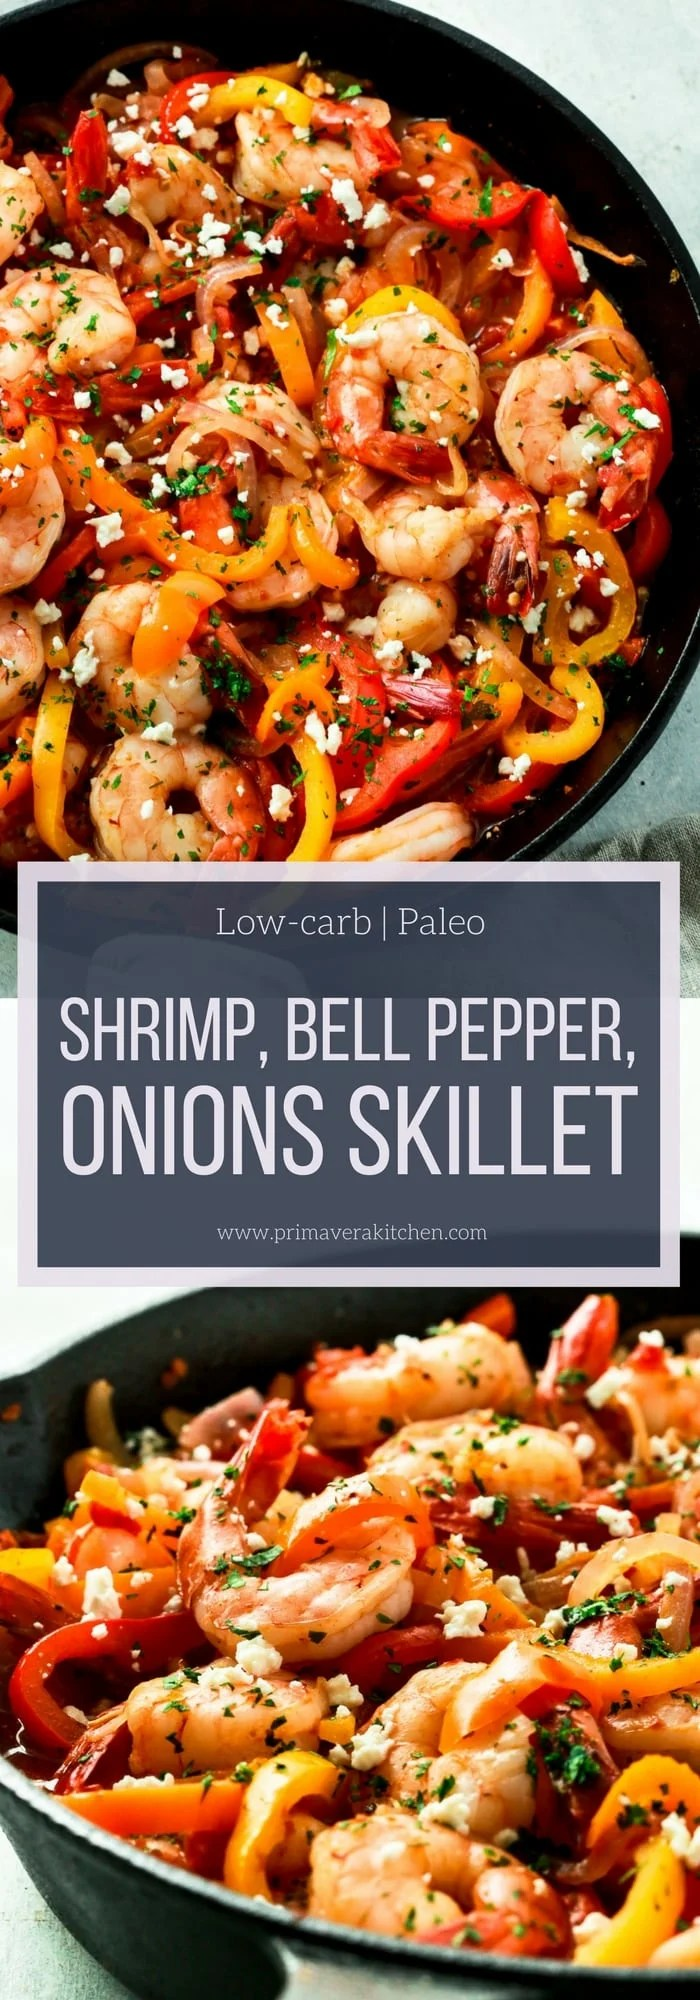 Shrimp, Bell Pepper and Onions Skillet